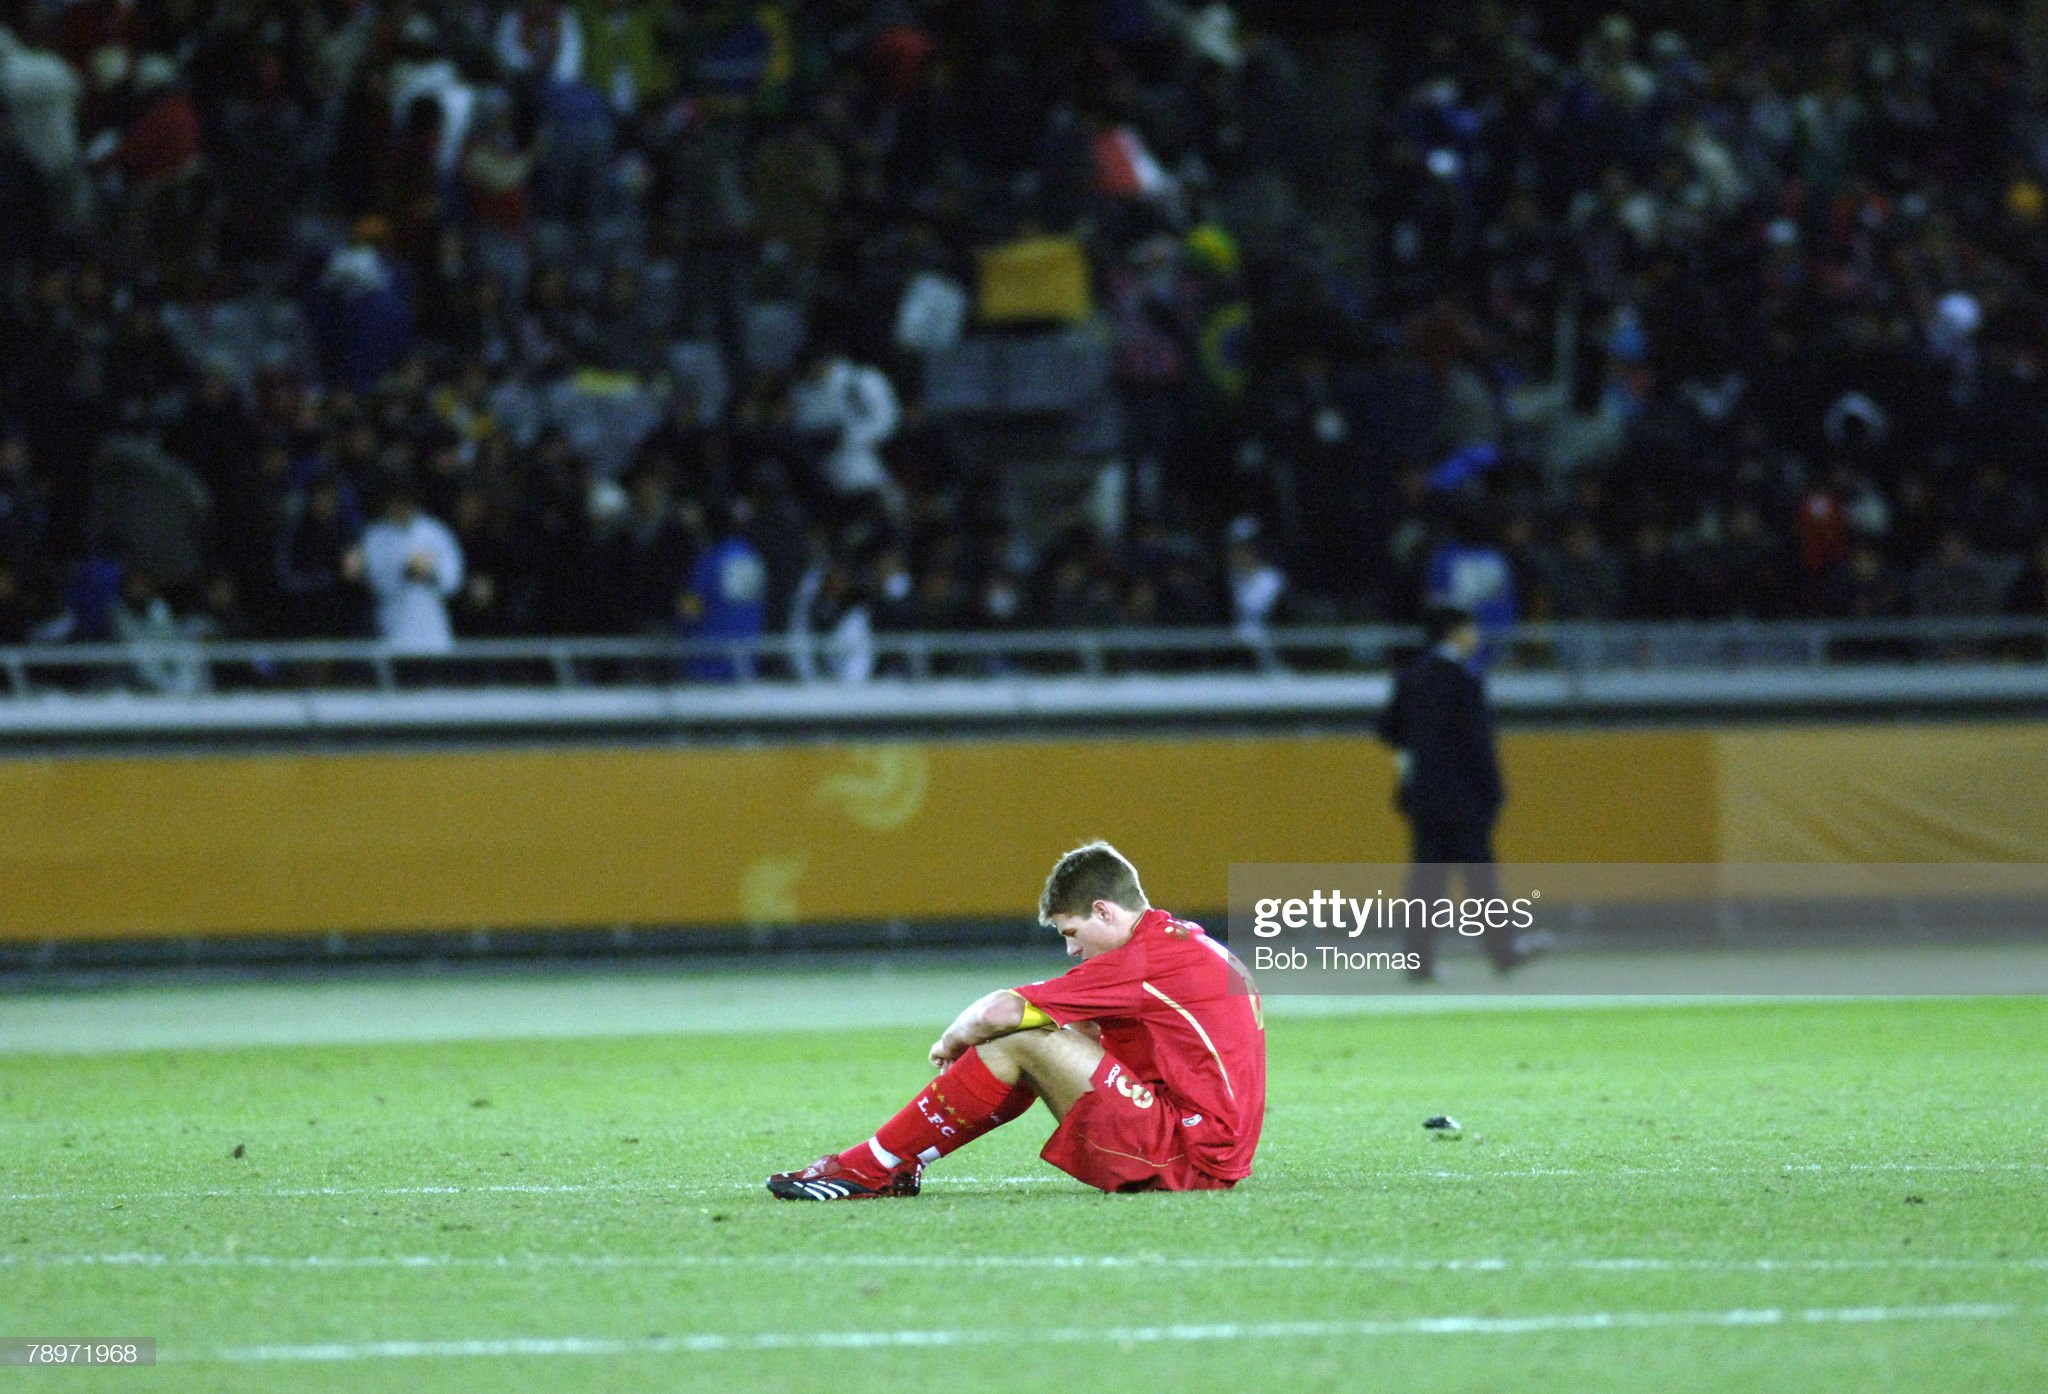 Sport. Football. FIFA Club World Championship Toyota Cup 2005. Yokohama, Japan. 18th December 2005. Final. Sao Paulo 1 v Liverpool 0. Liverpool captain Steven Gerrard sits on the pitch dejected after his teams defeat. : News Photo